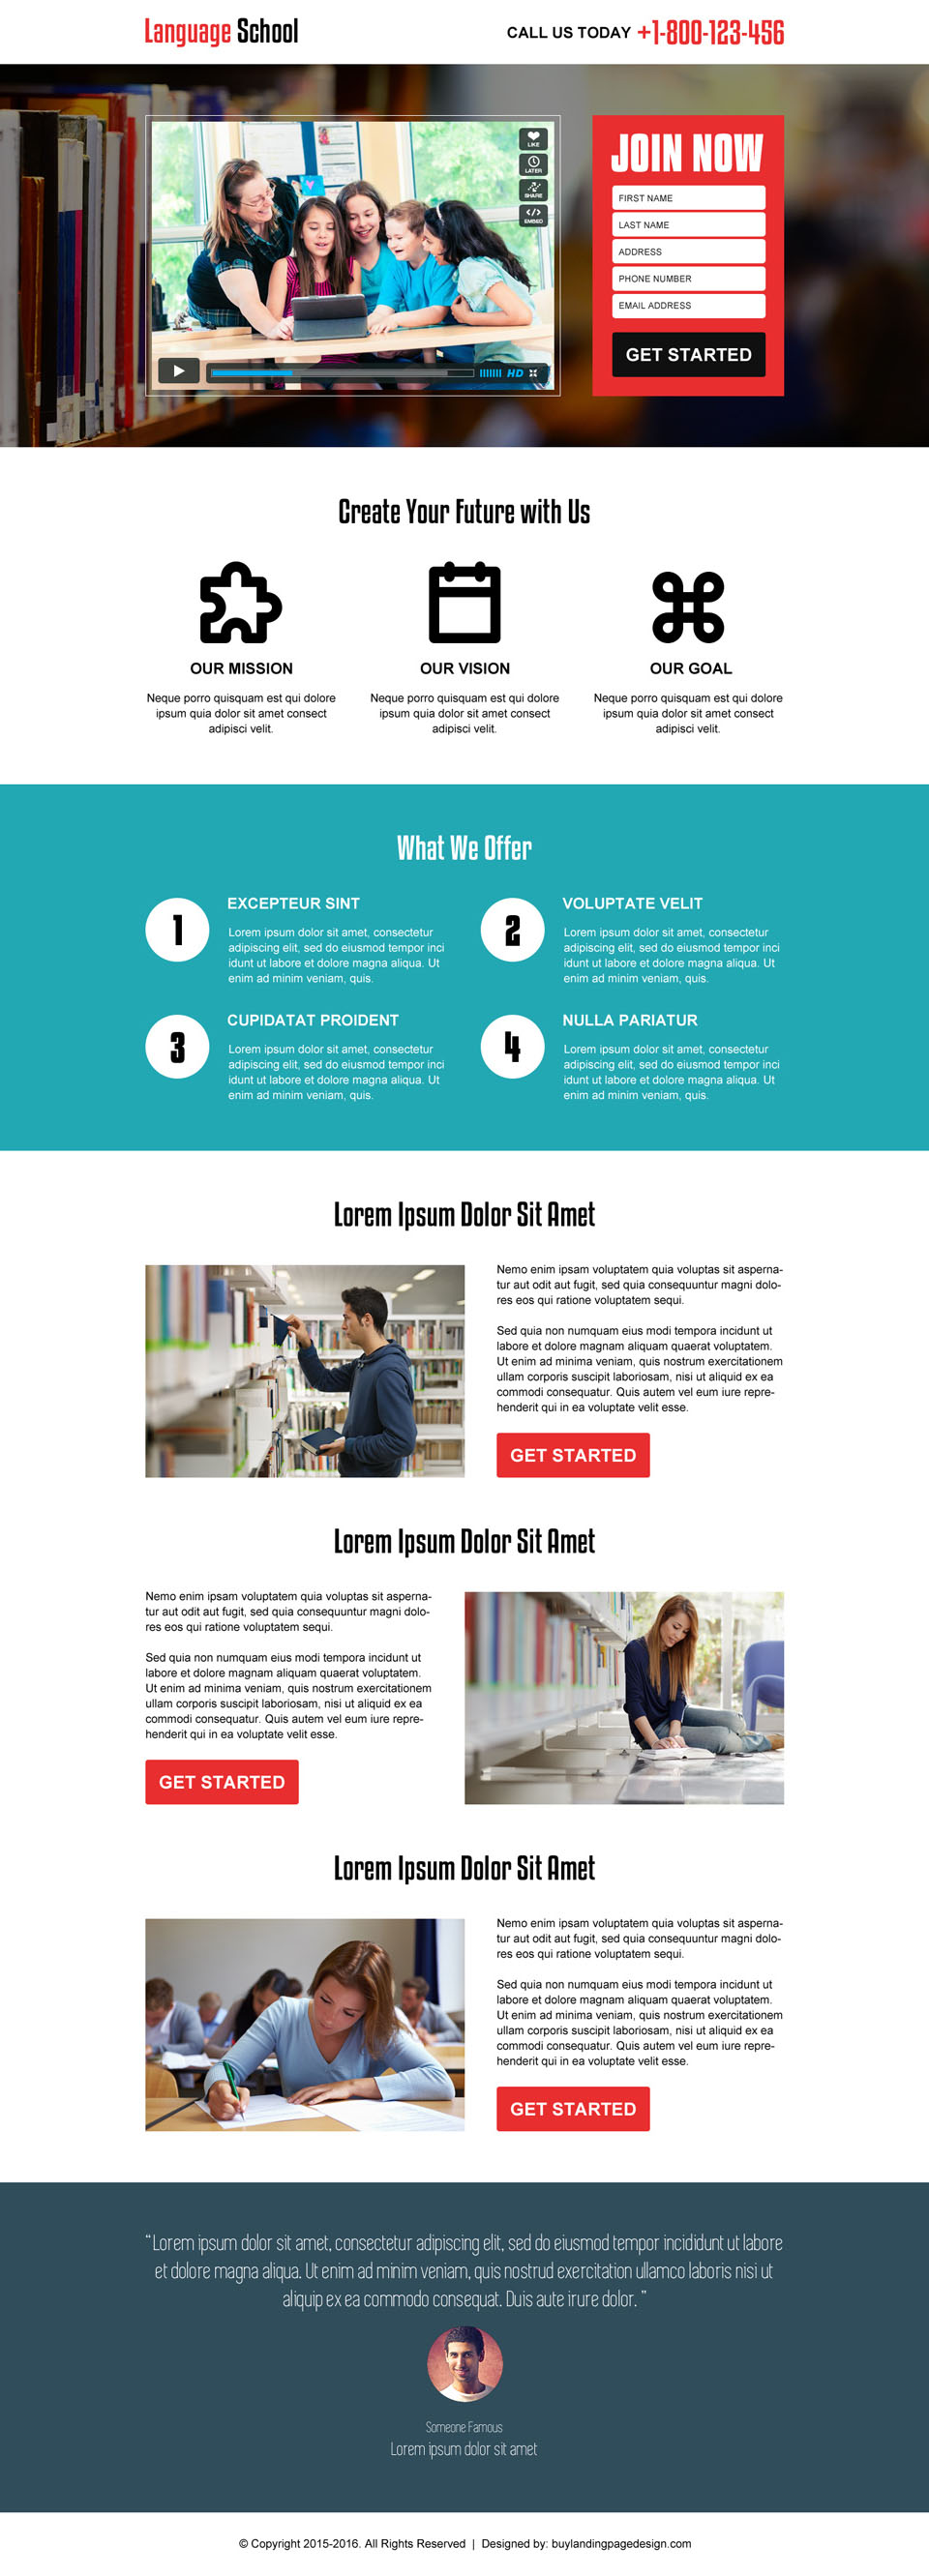 best-education-video-landing-page-design-template-to-capture-education-leads-018